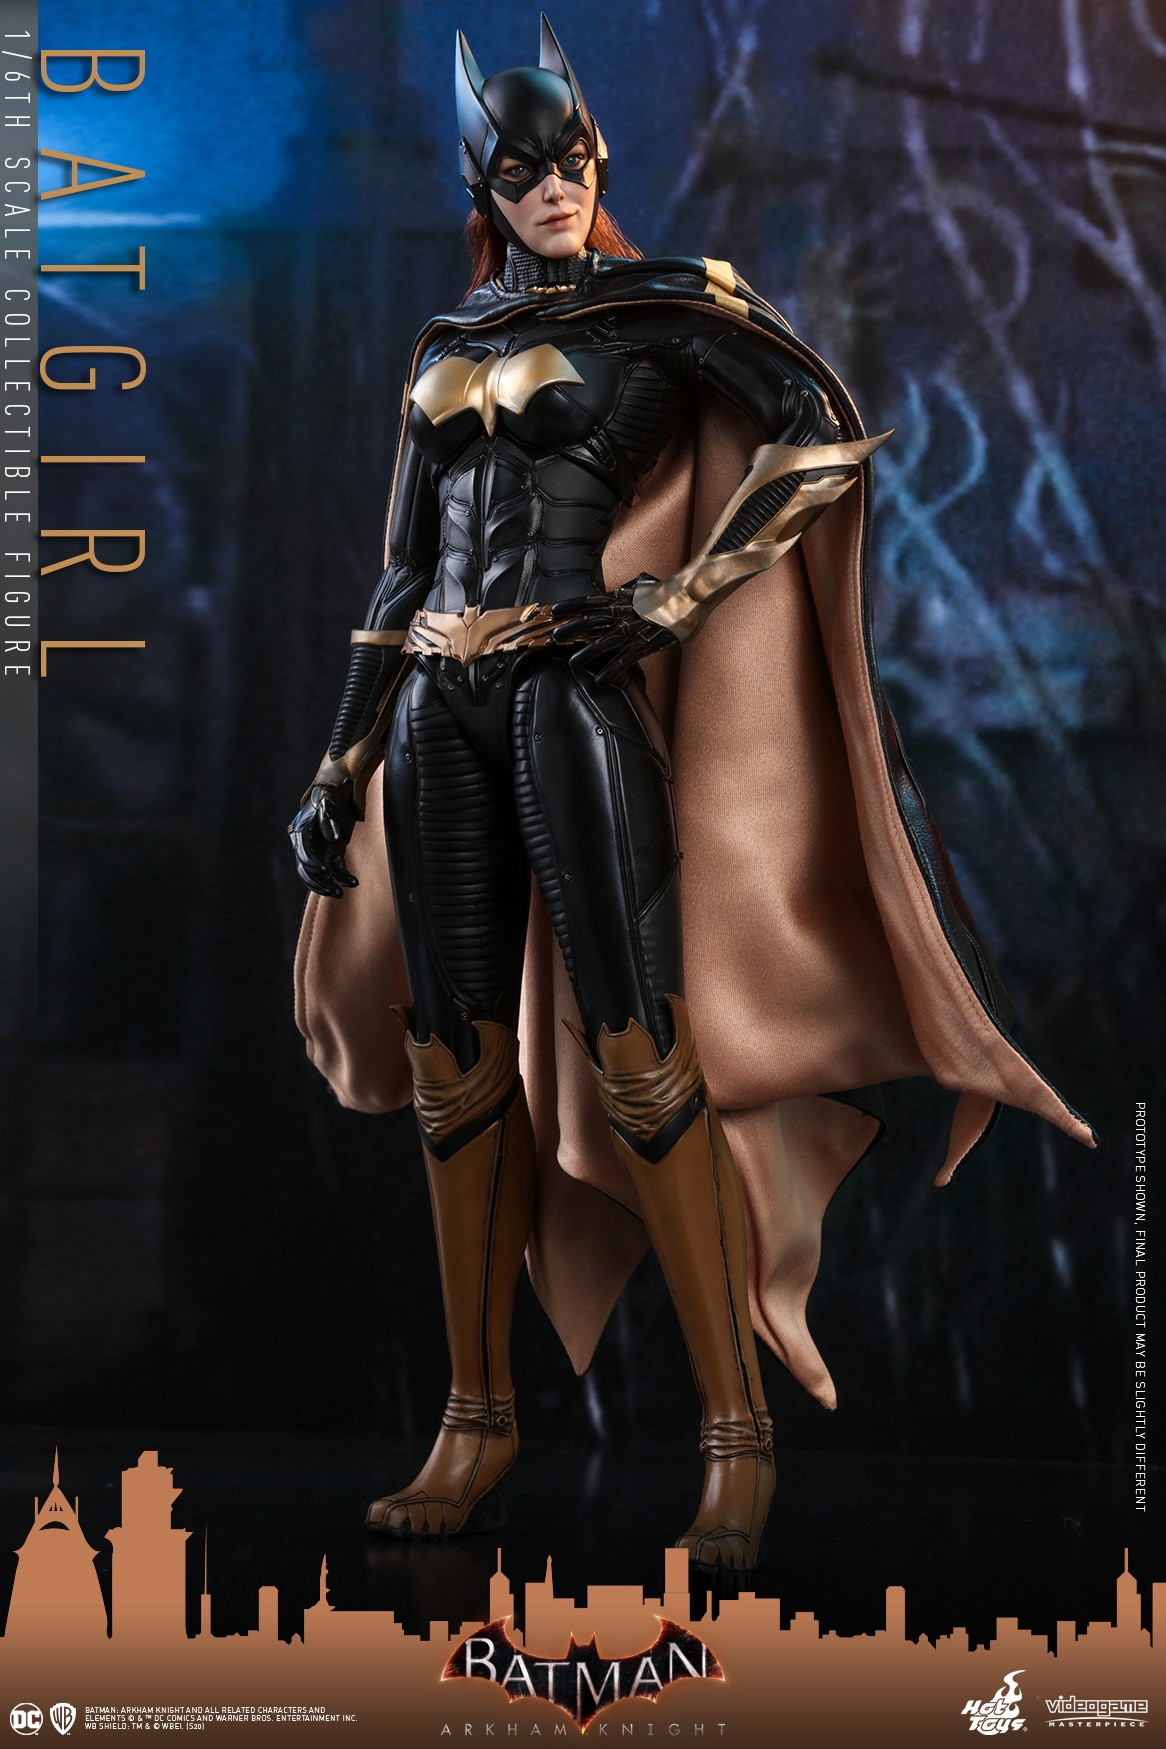 Pre-Order Hot Toys DC Comics Batgirl Arkham Knight Sixth Scale